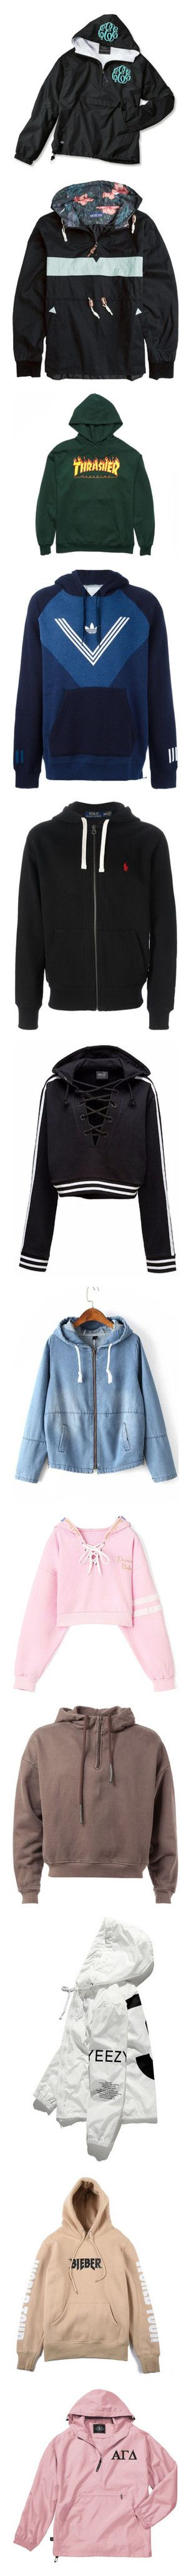 """""""Hoodies 👄💖💎👑"""" by reneemonee42 ❤ liked on Polyvore featuring outerwear, jackets, coats, black, women's clothing, monogrammed pullover, zip pullover, rain jacket, letter jacket and nylon pullover jackets"""